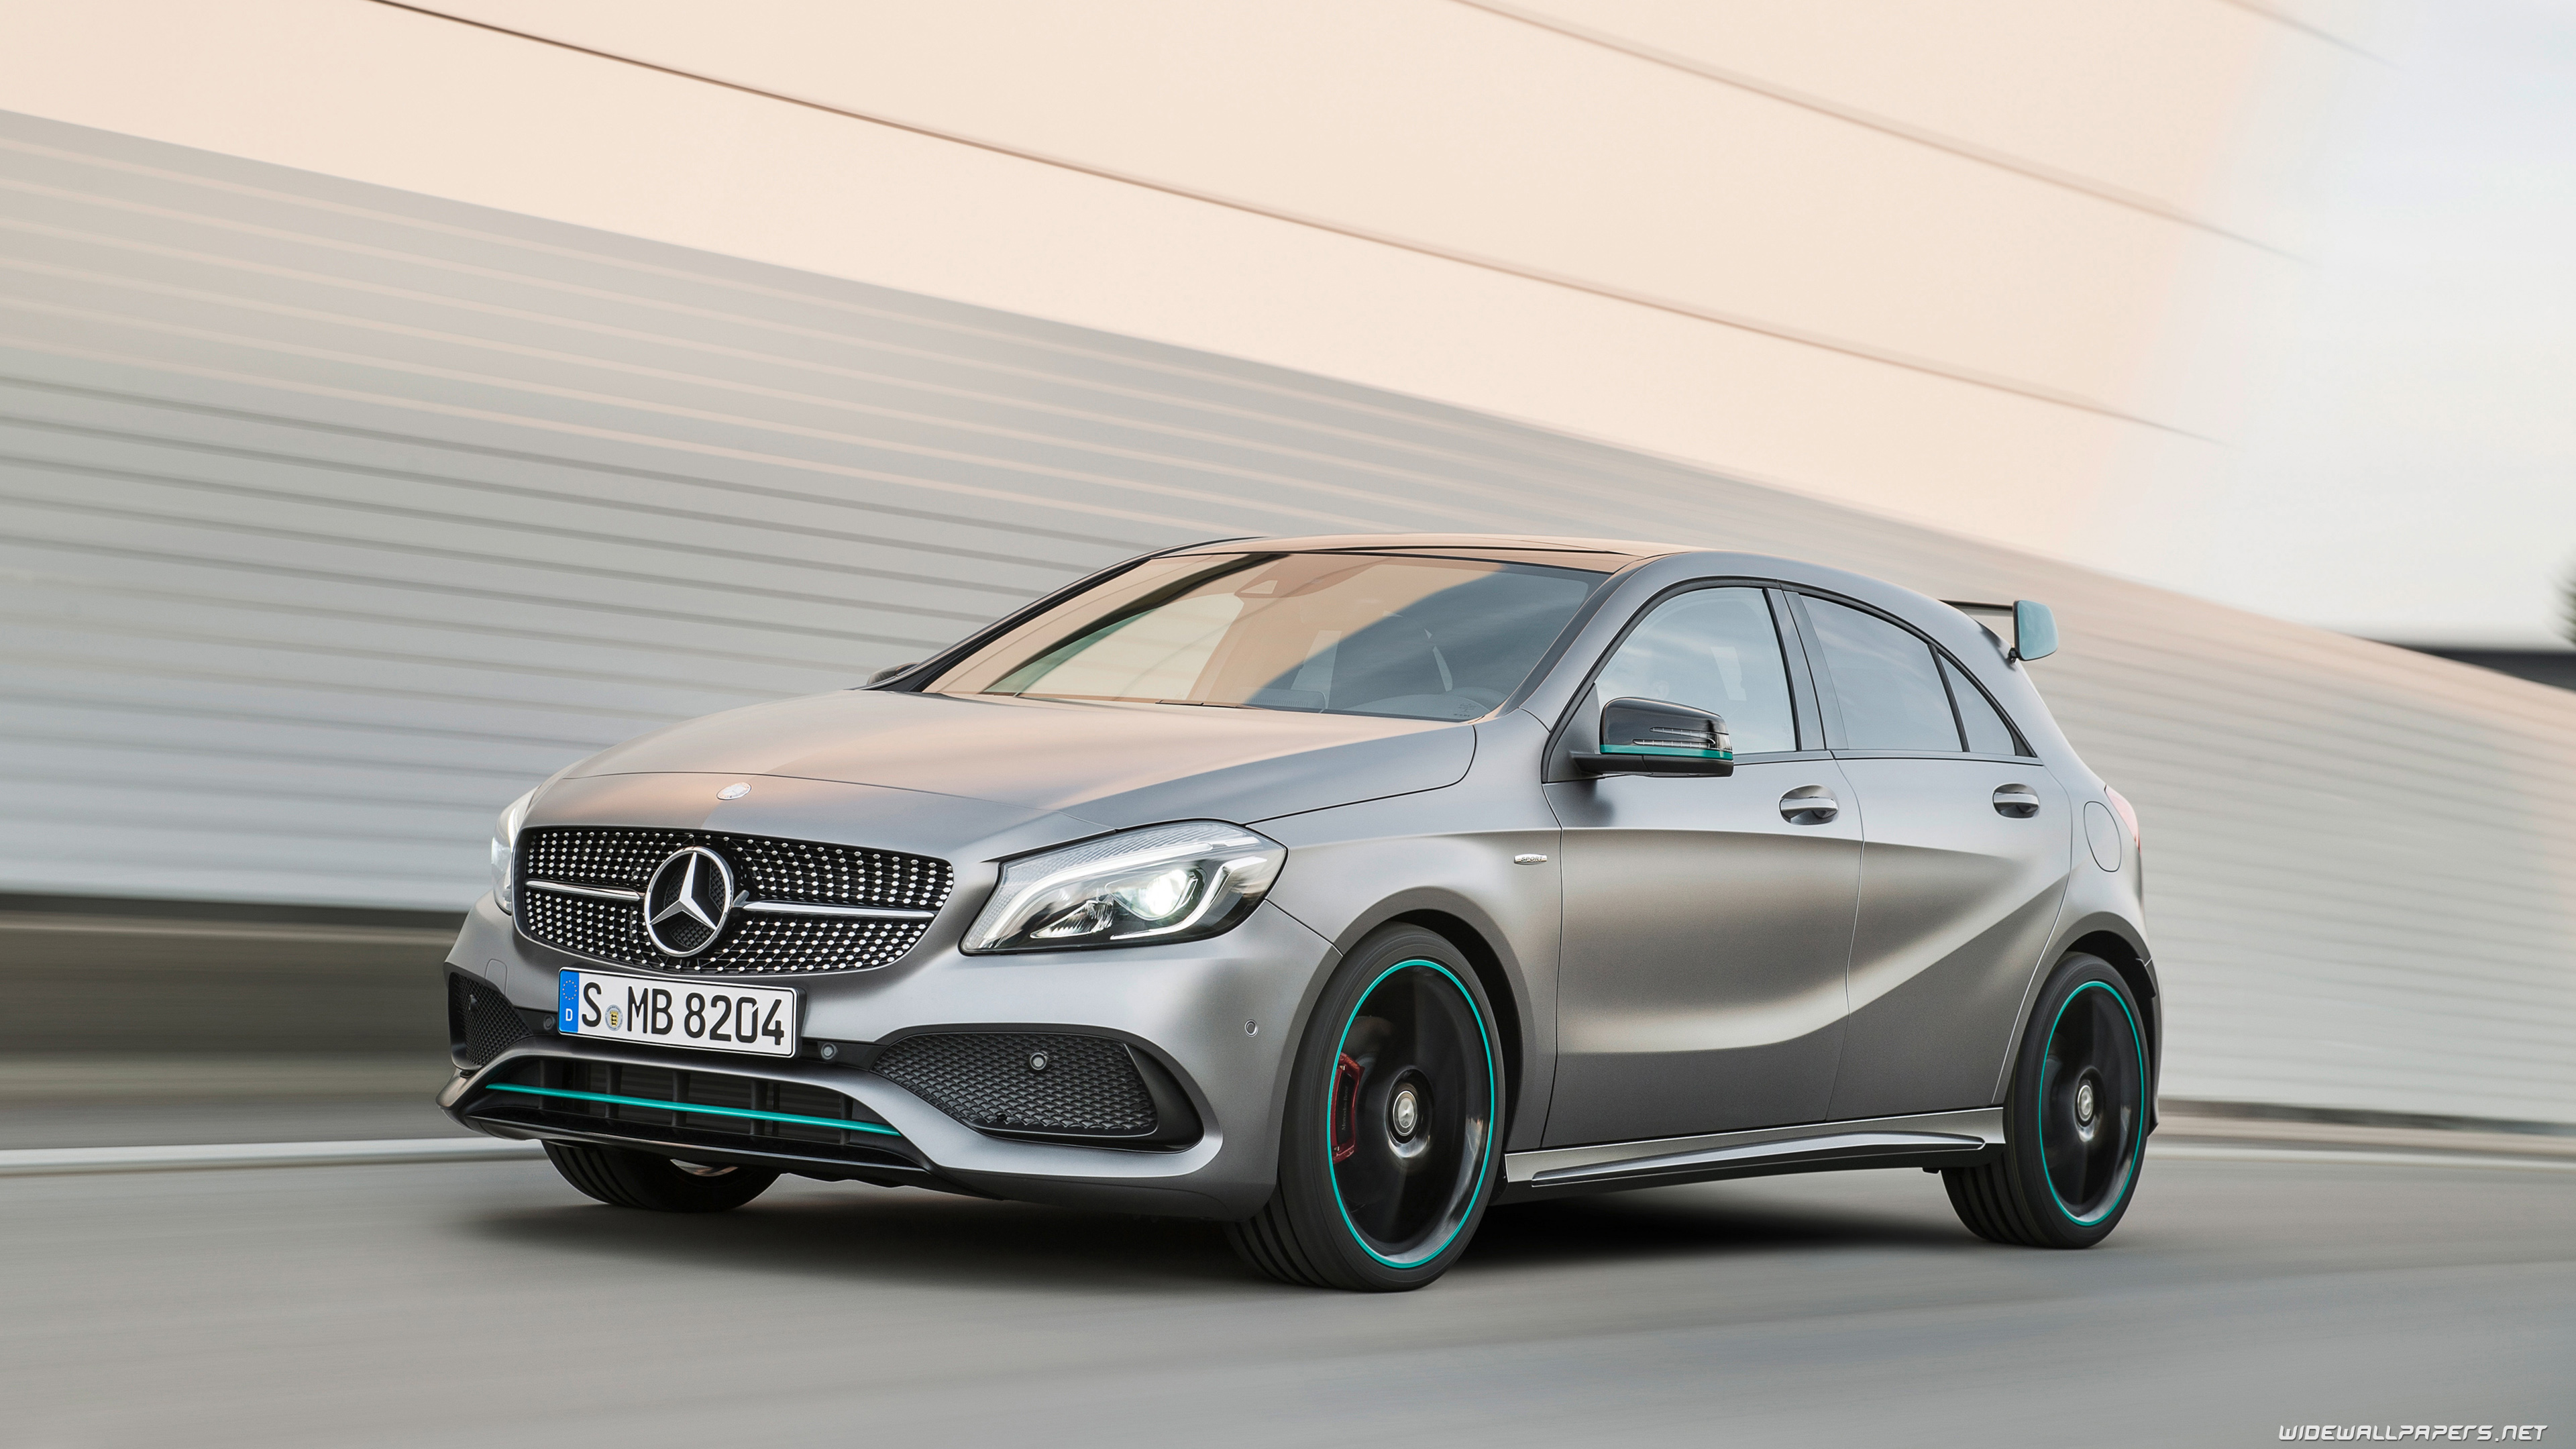 Mercedes benz a class cars desktop wallpapers 4k ultra hd for Mercedes benz motorsport